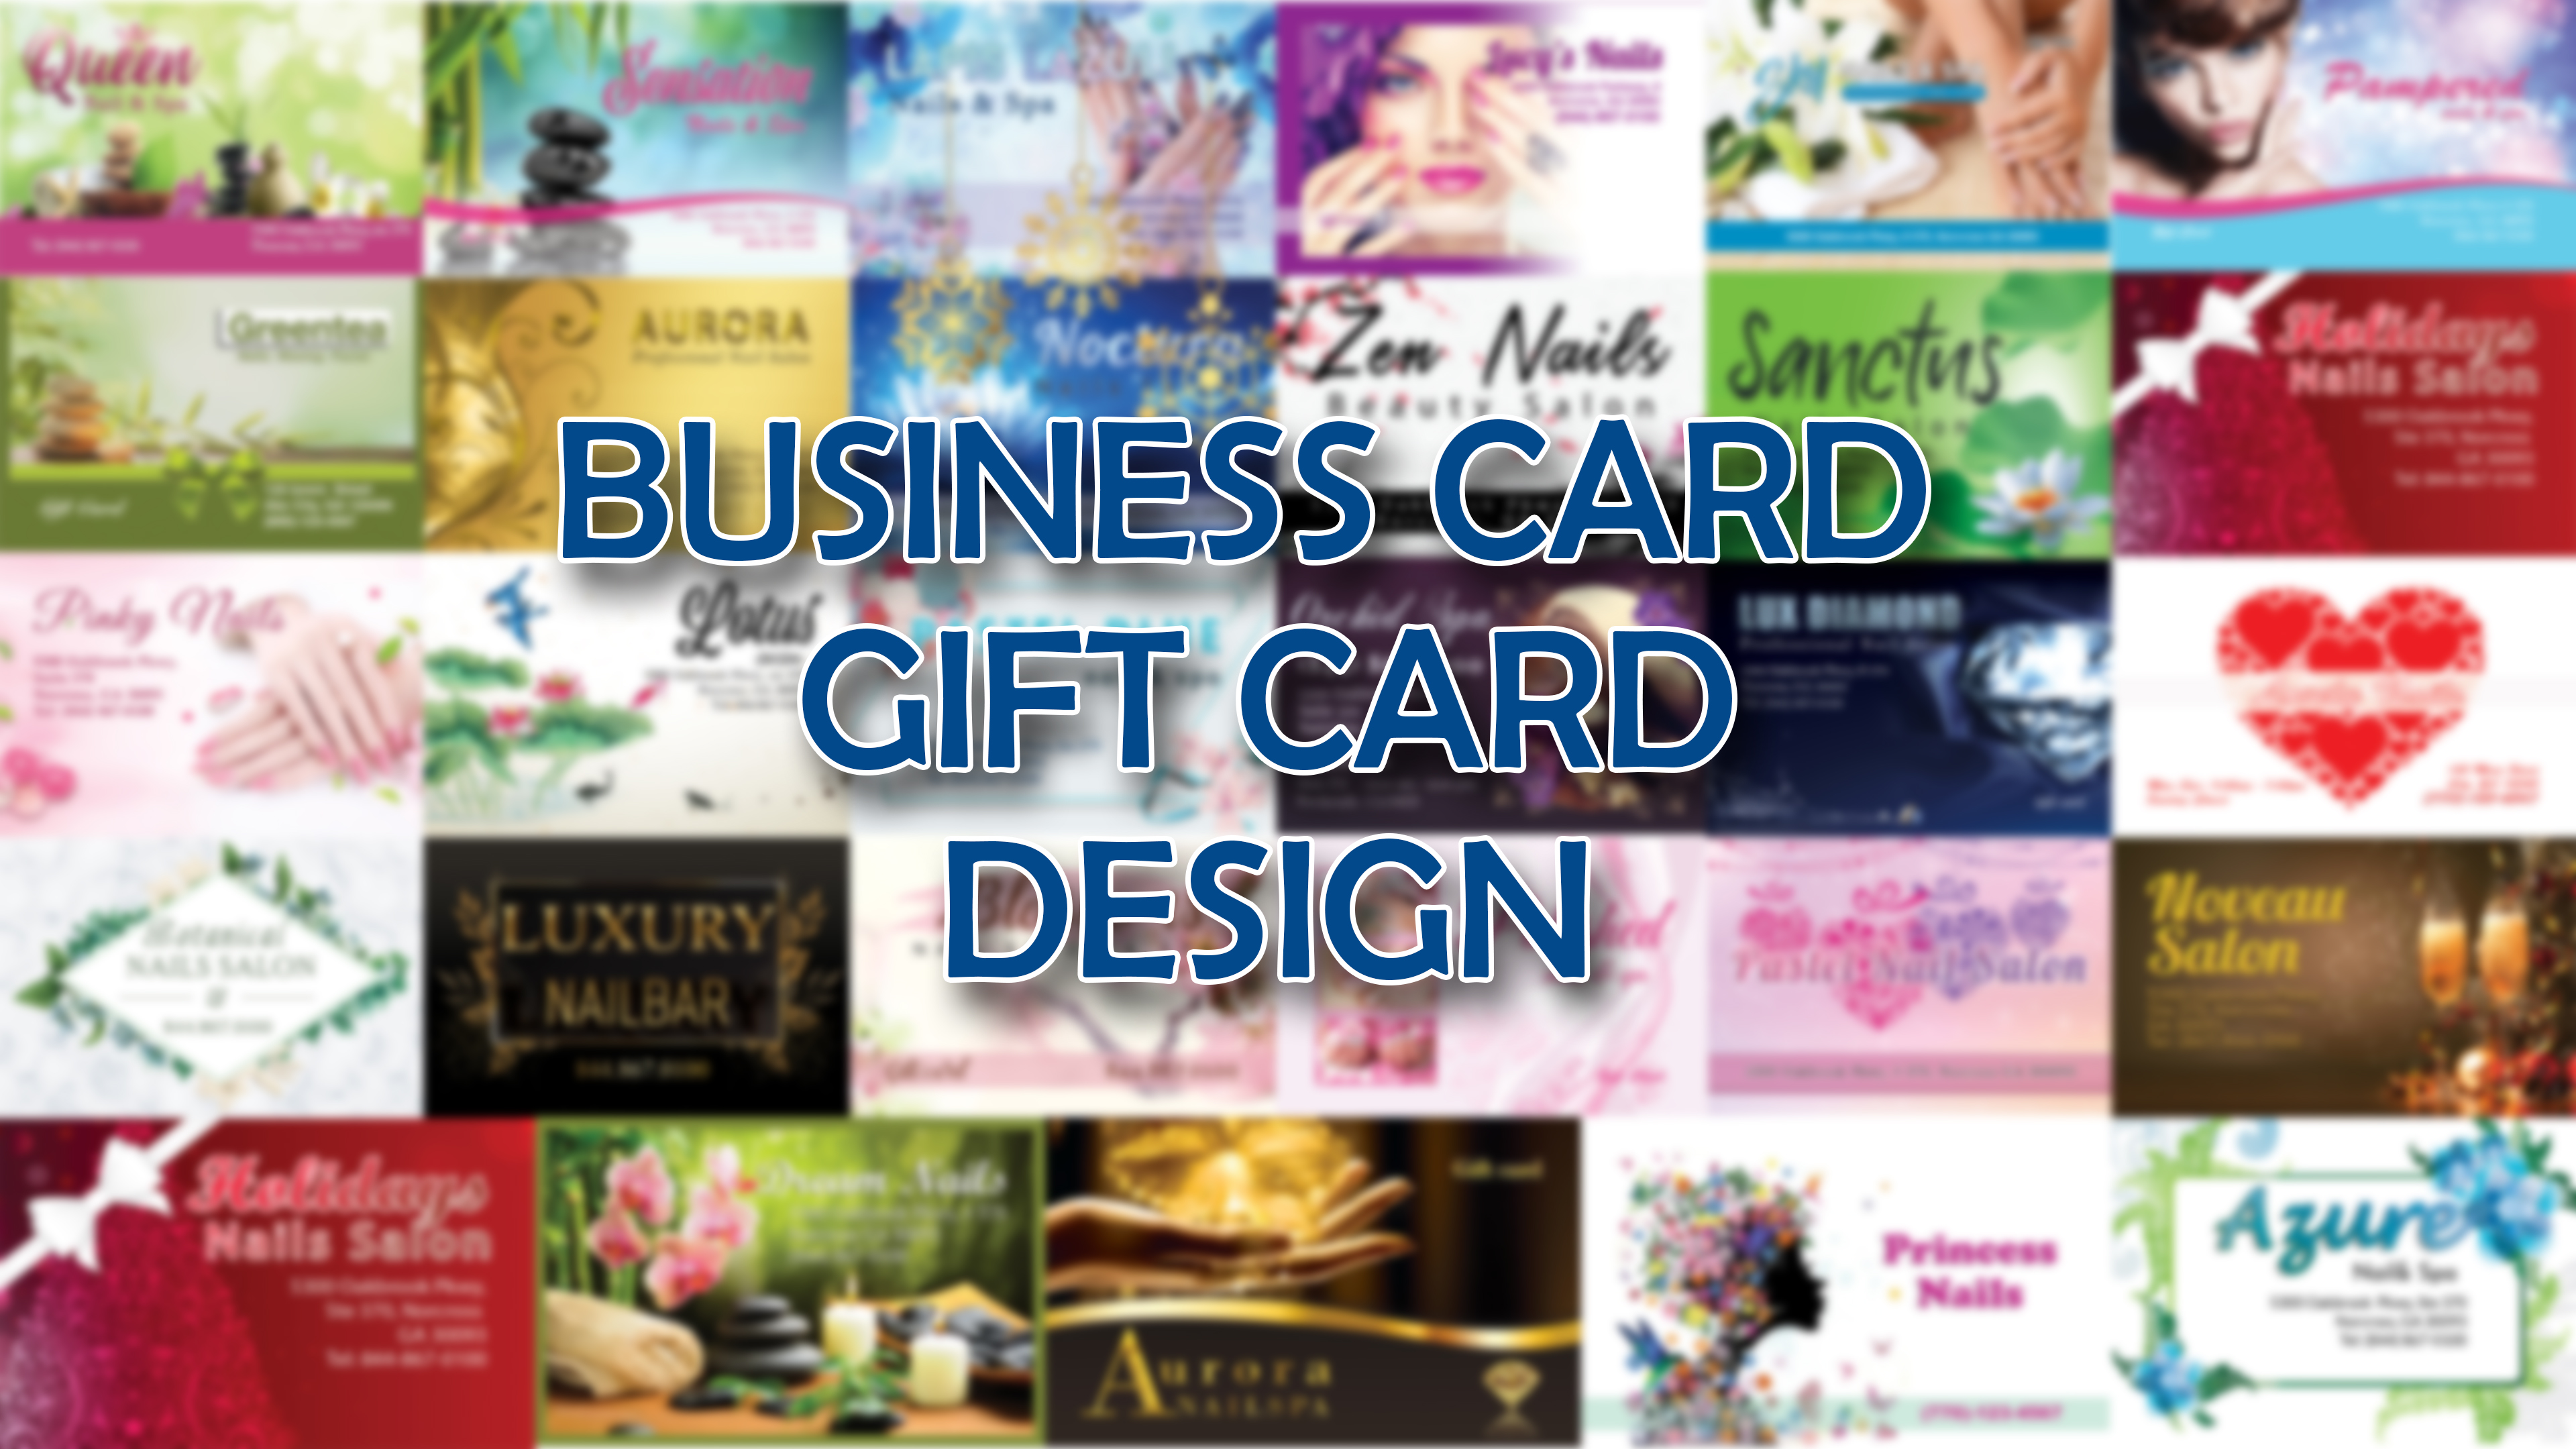 ALL GIFT CARD